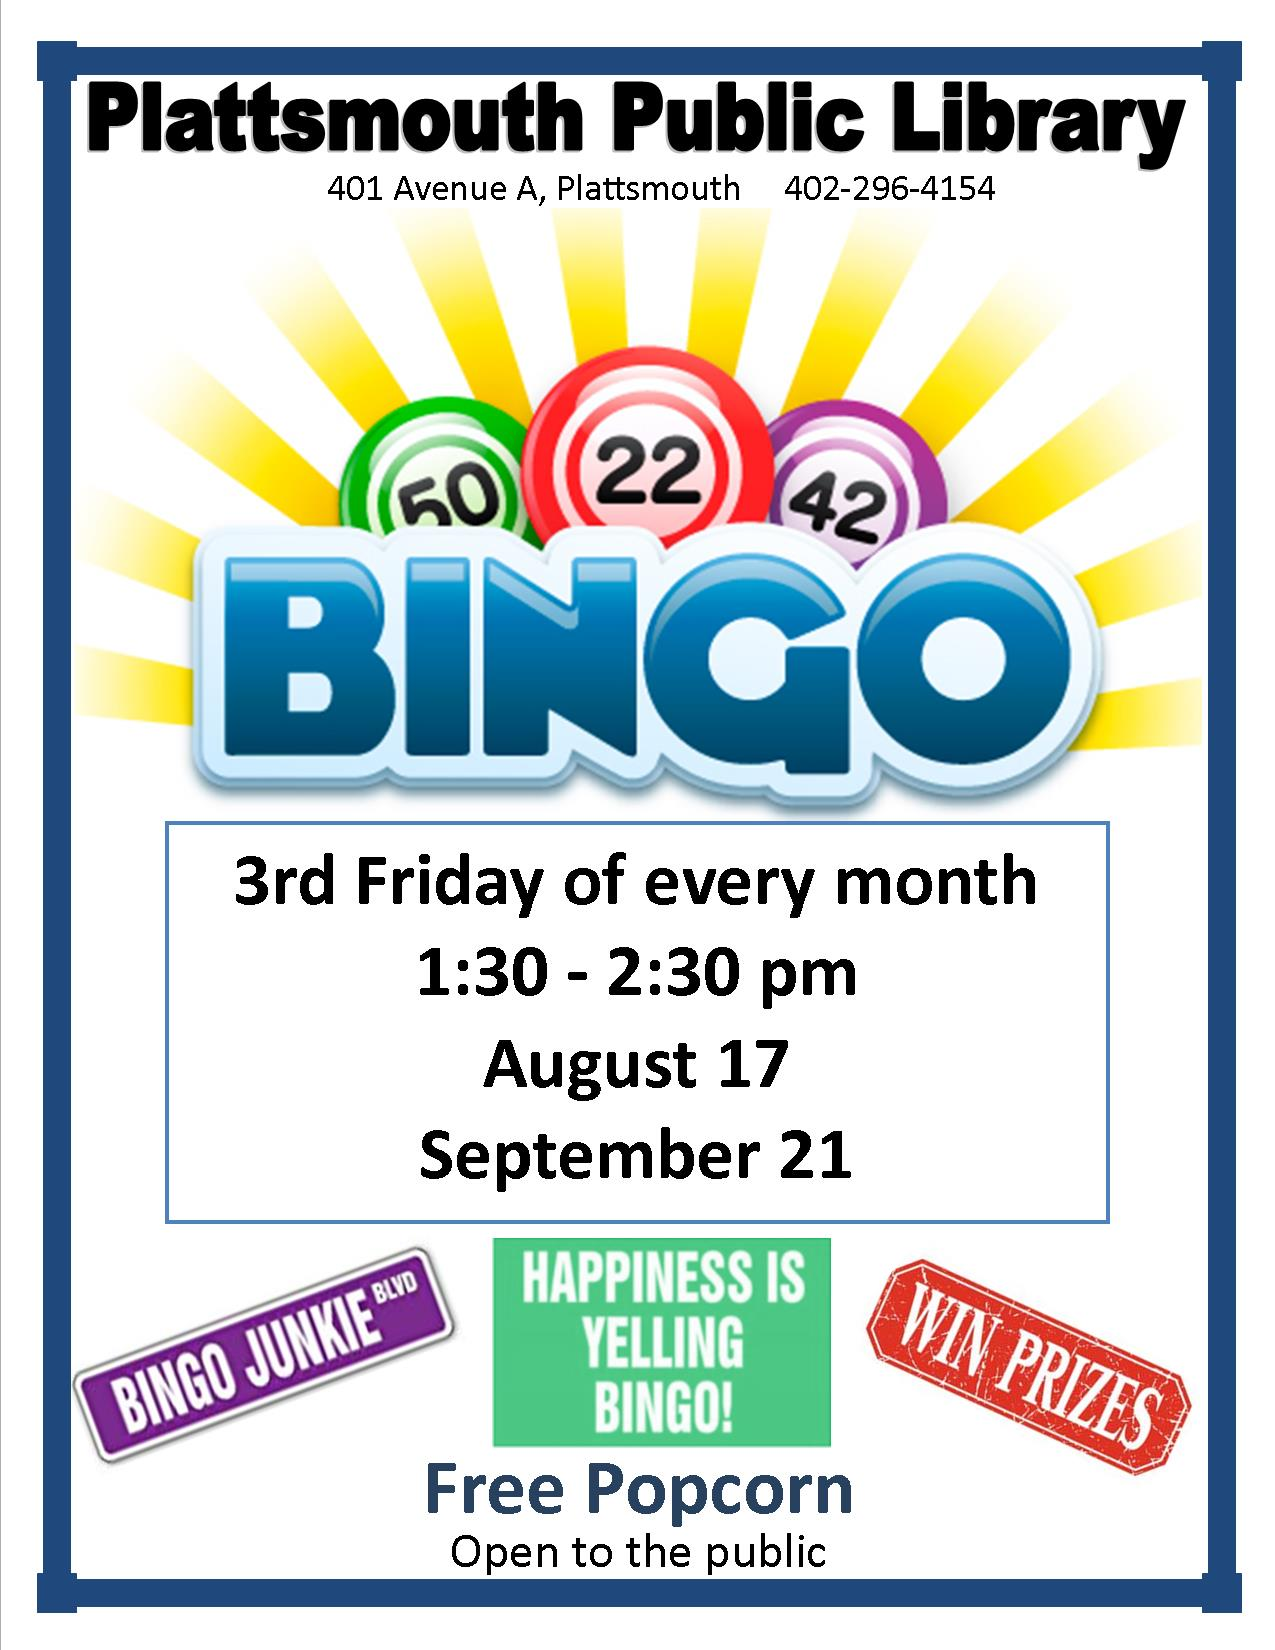 Bingo on Fridays